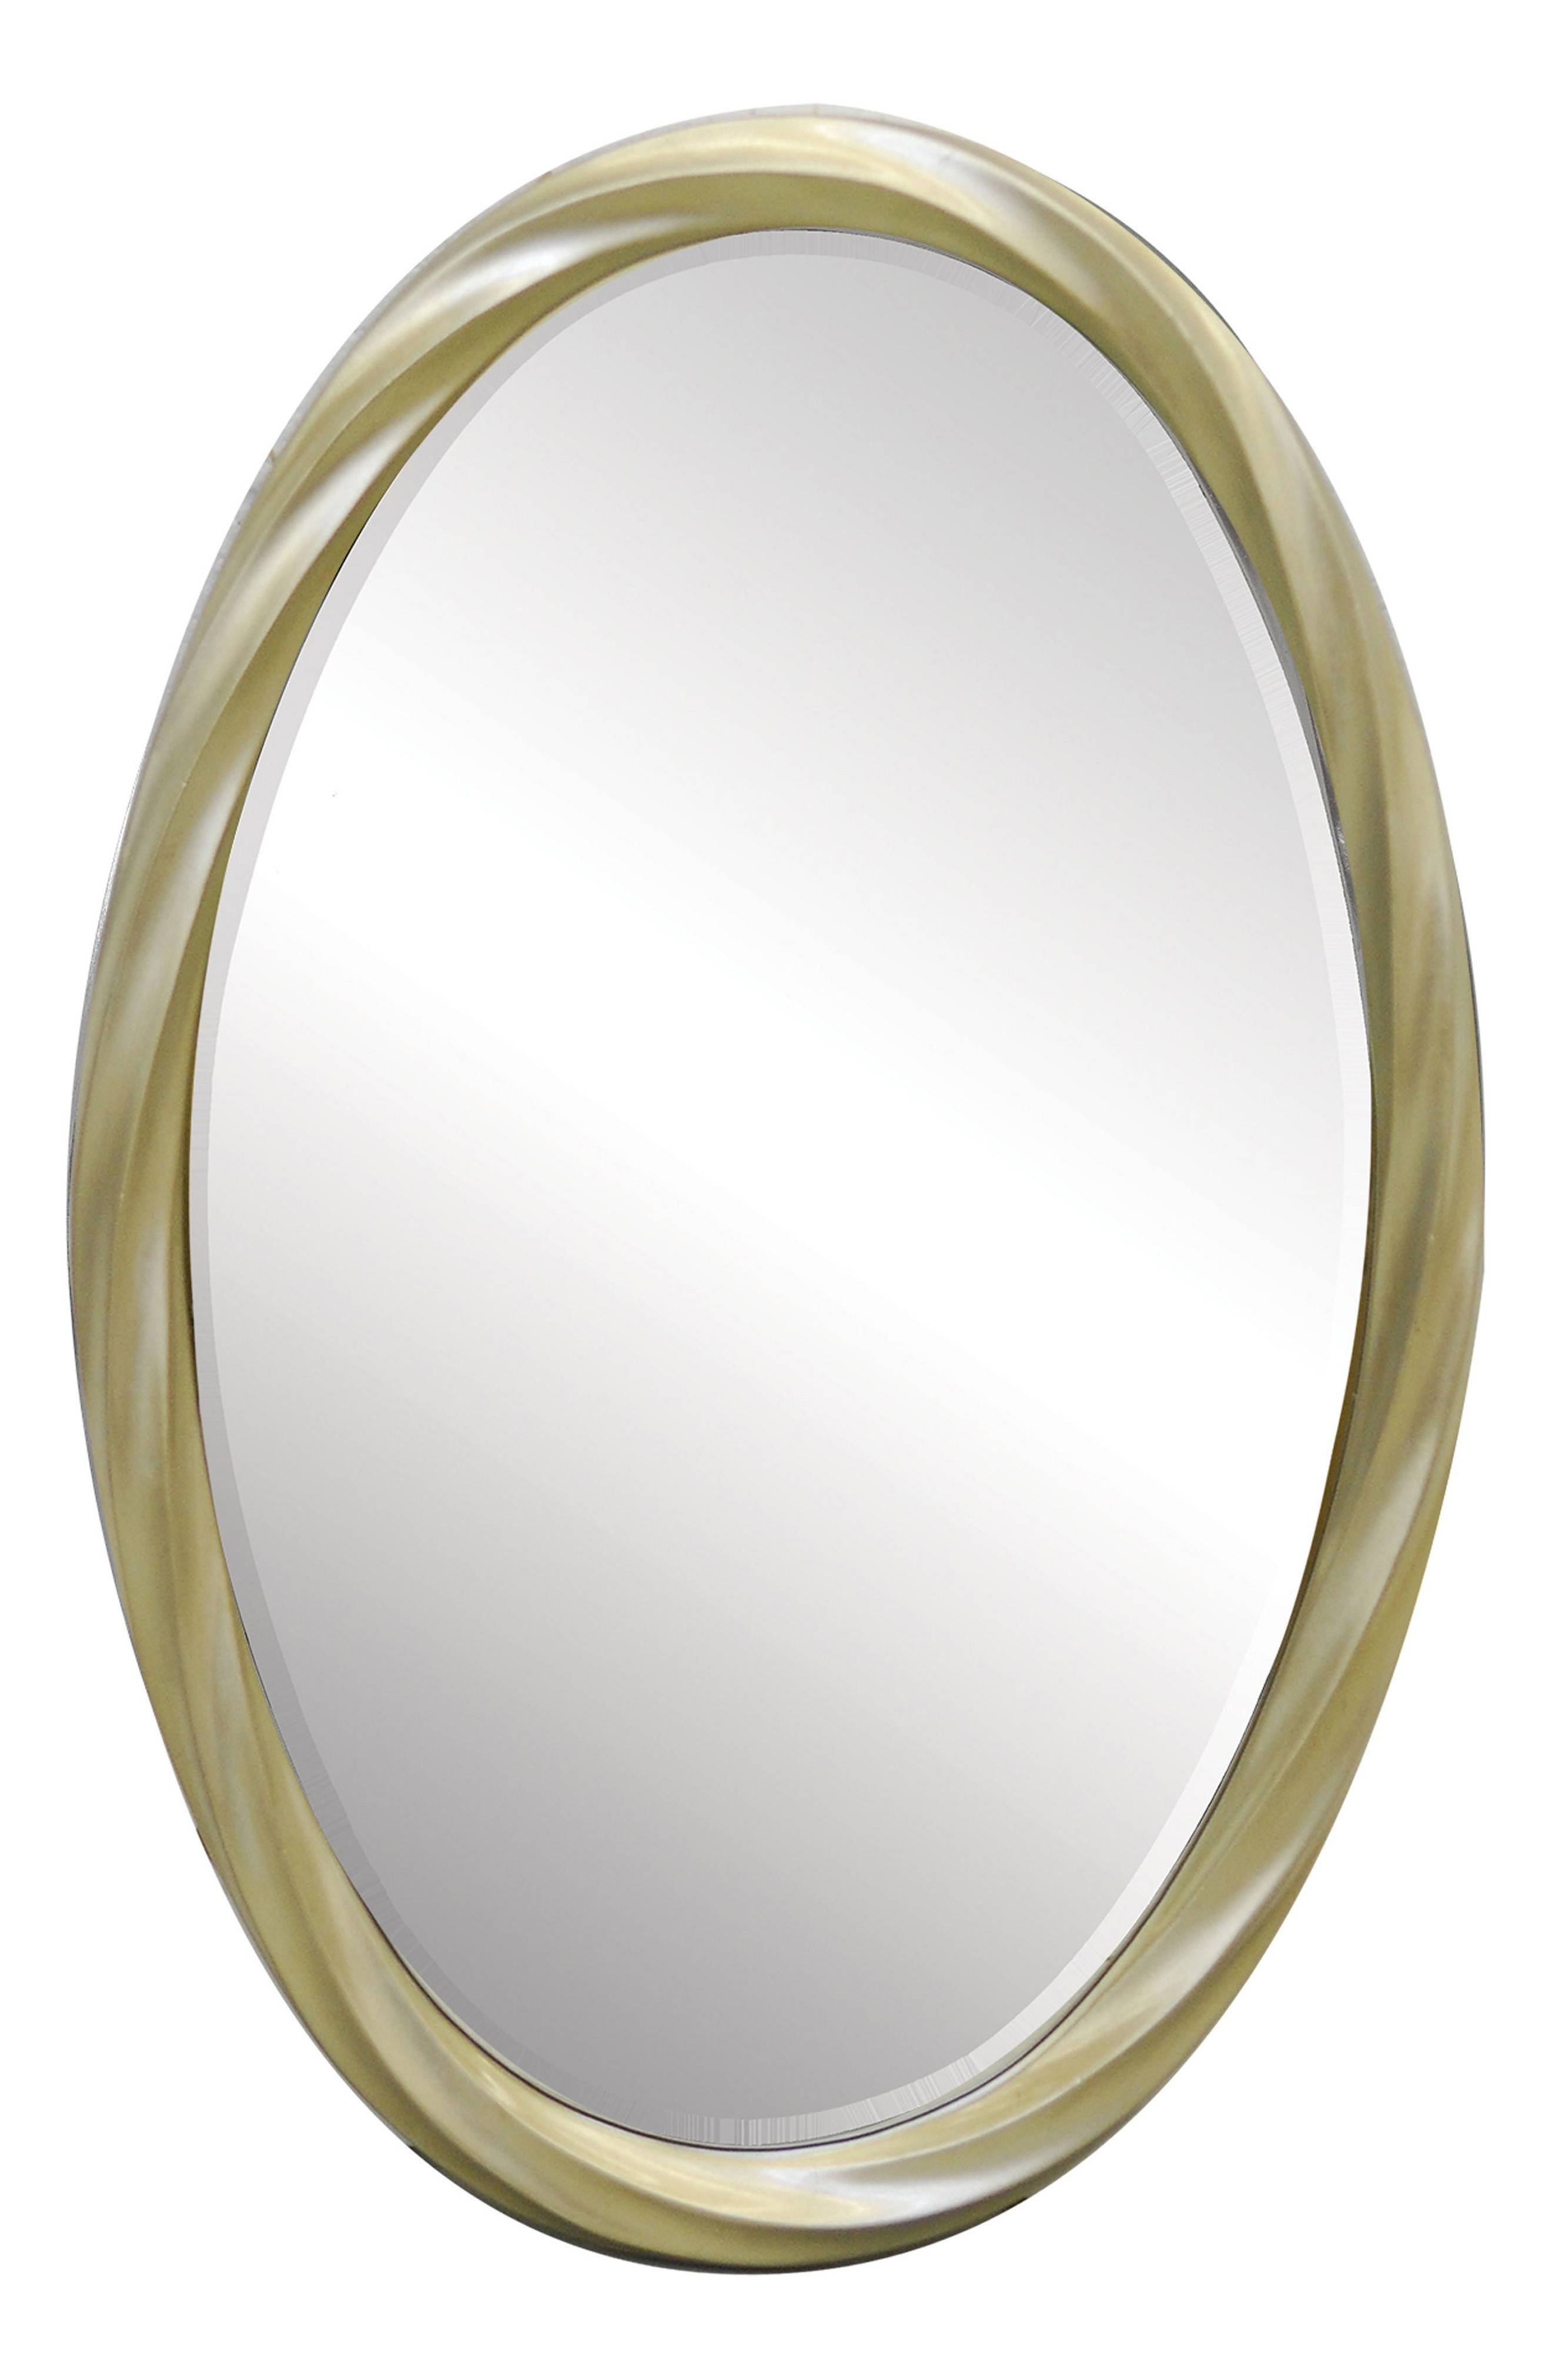 Nordstrom | Nordstrom for Ornate Round Mirrors (Image 18 of 25)